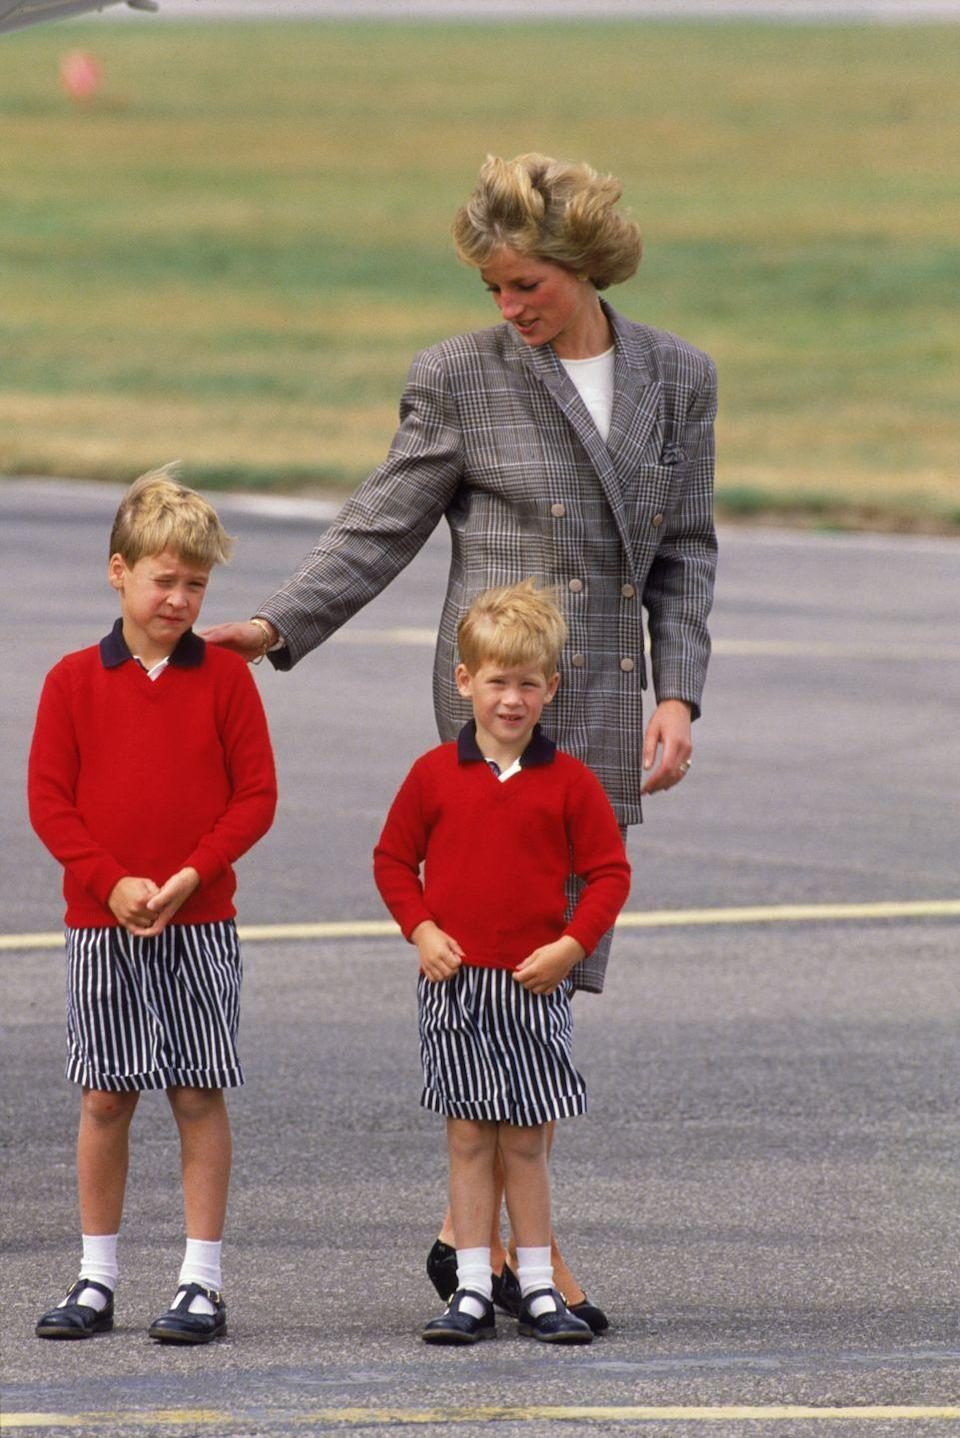 <p>Few things are cuter than little royals in matching outfits. Princes William and Harry wore striped shorts and red collared sweaters while arriving at the Aberdeen airport. Princess Diana chose a plaid, double-breasted suit. </p>